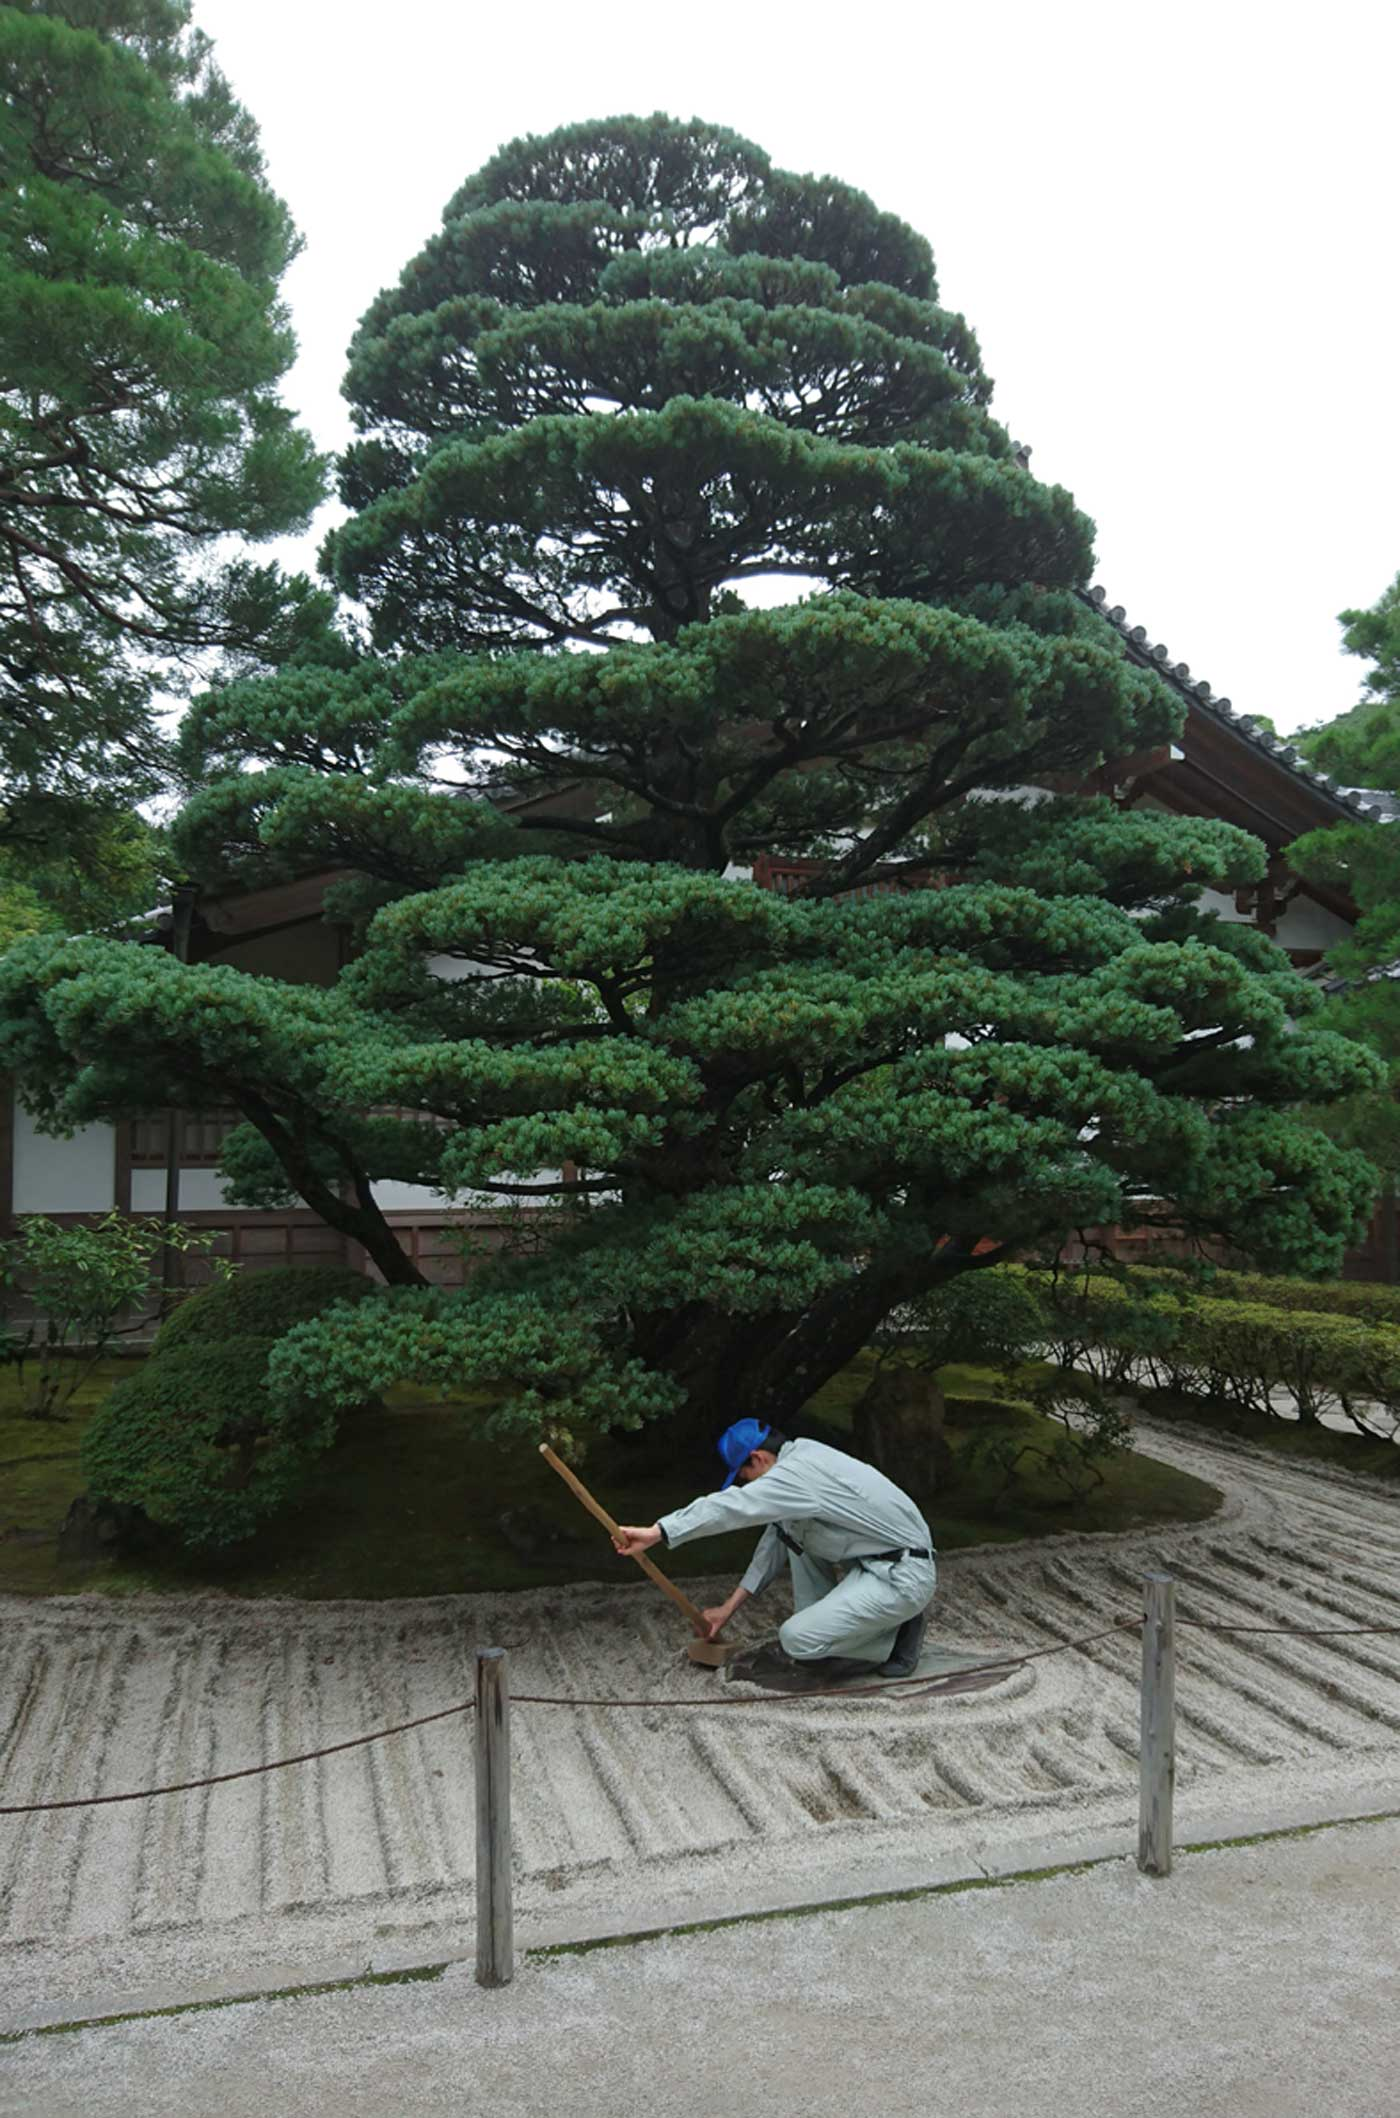 Maintaining the dry garden around <i>Pinus parviflora</i> at Ginkaku-ji, Kyoto.